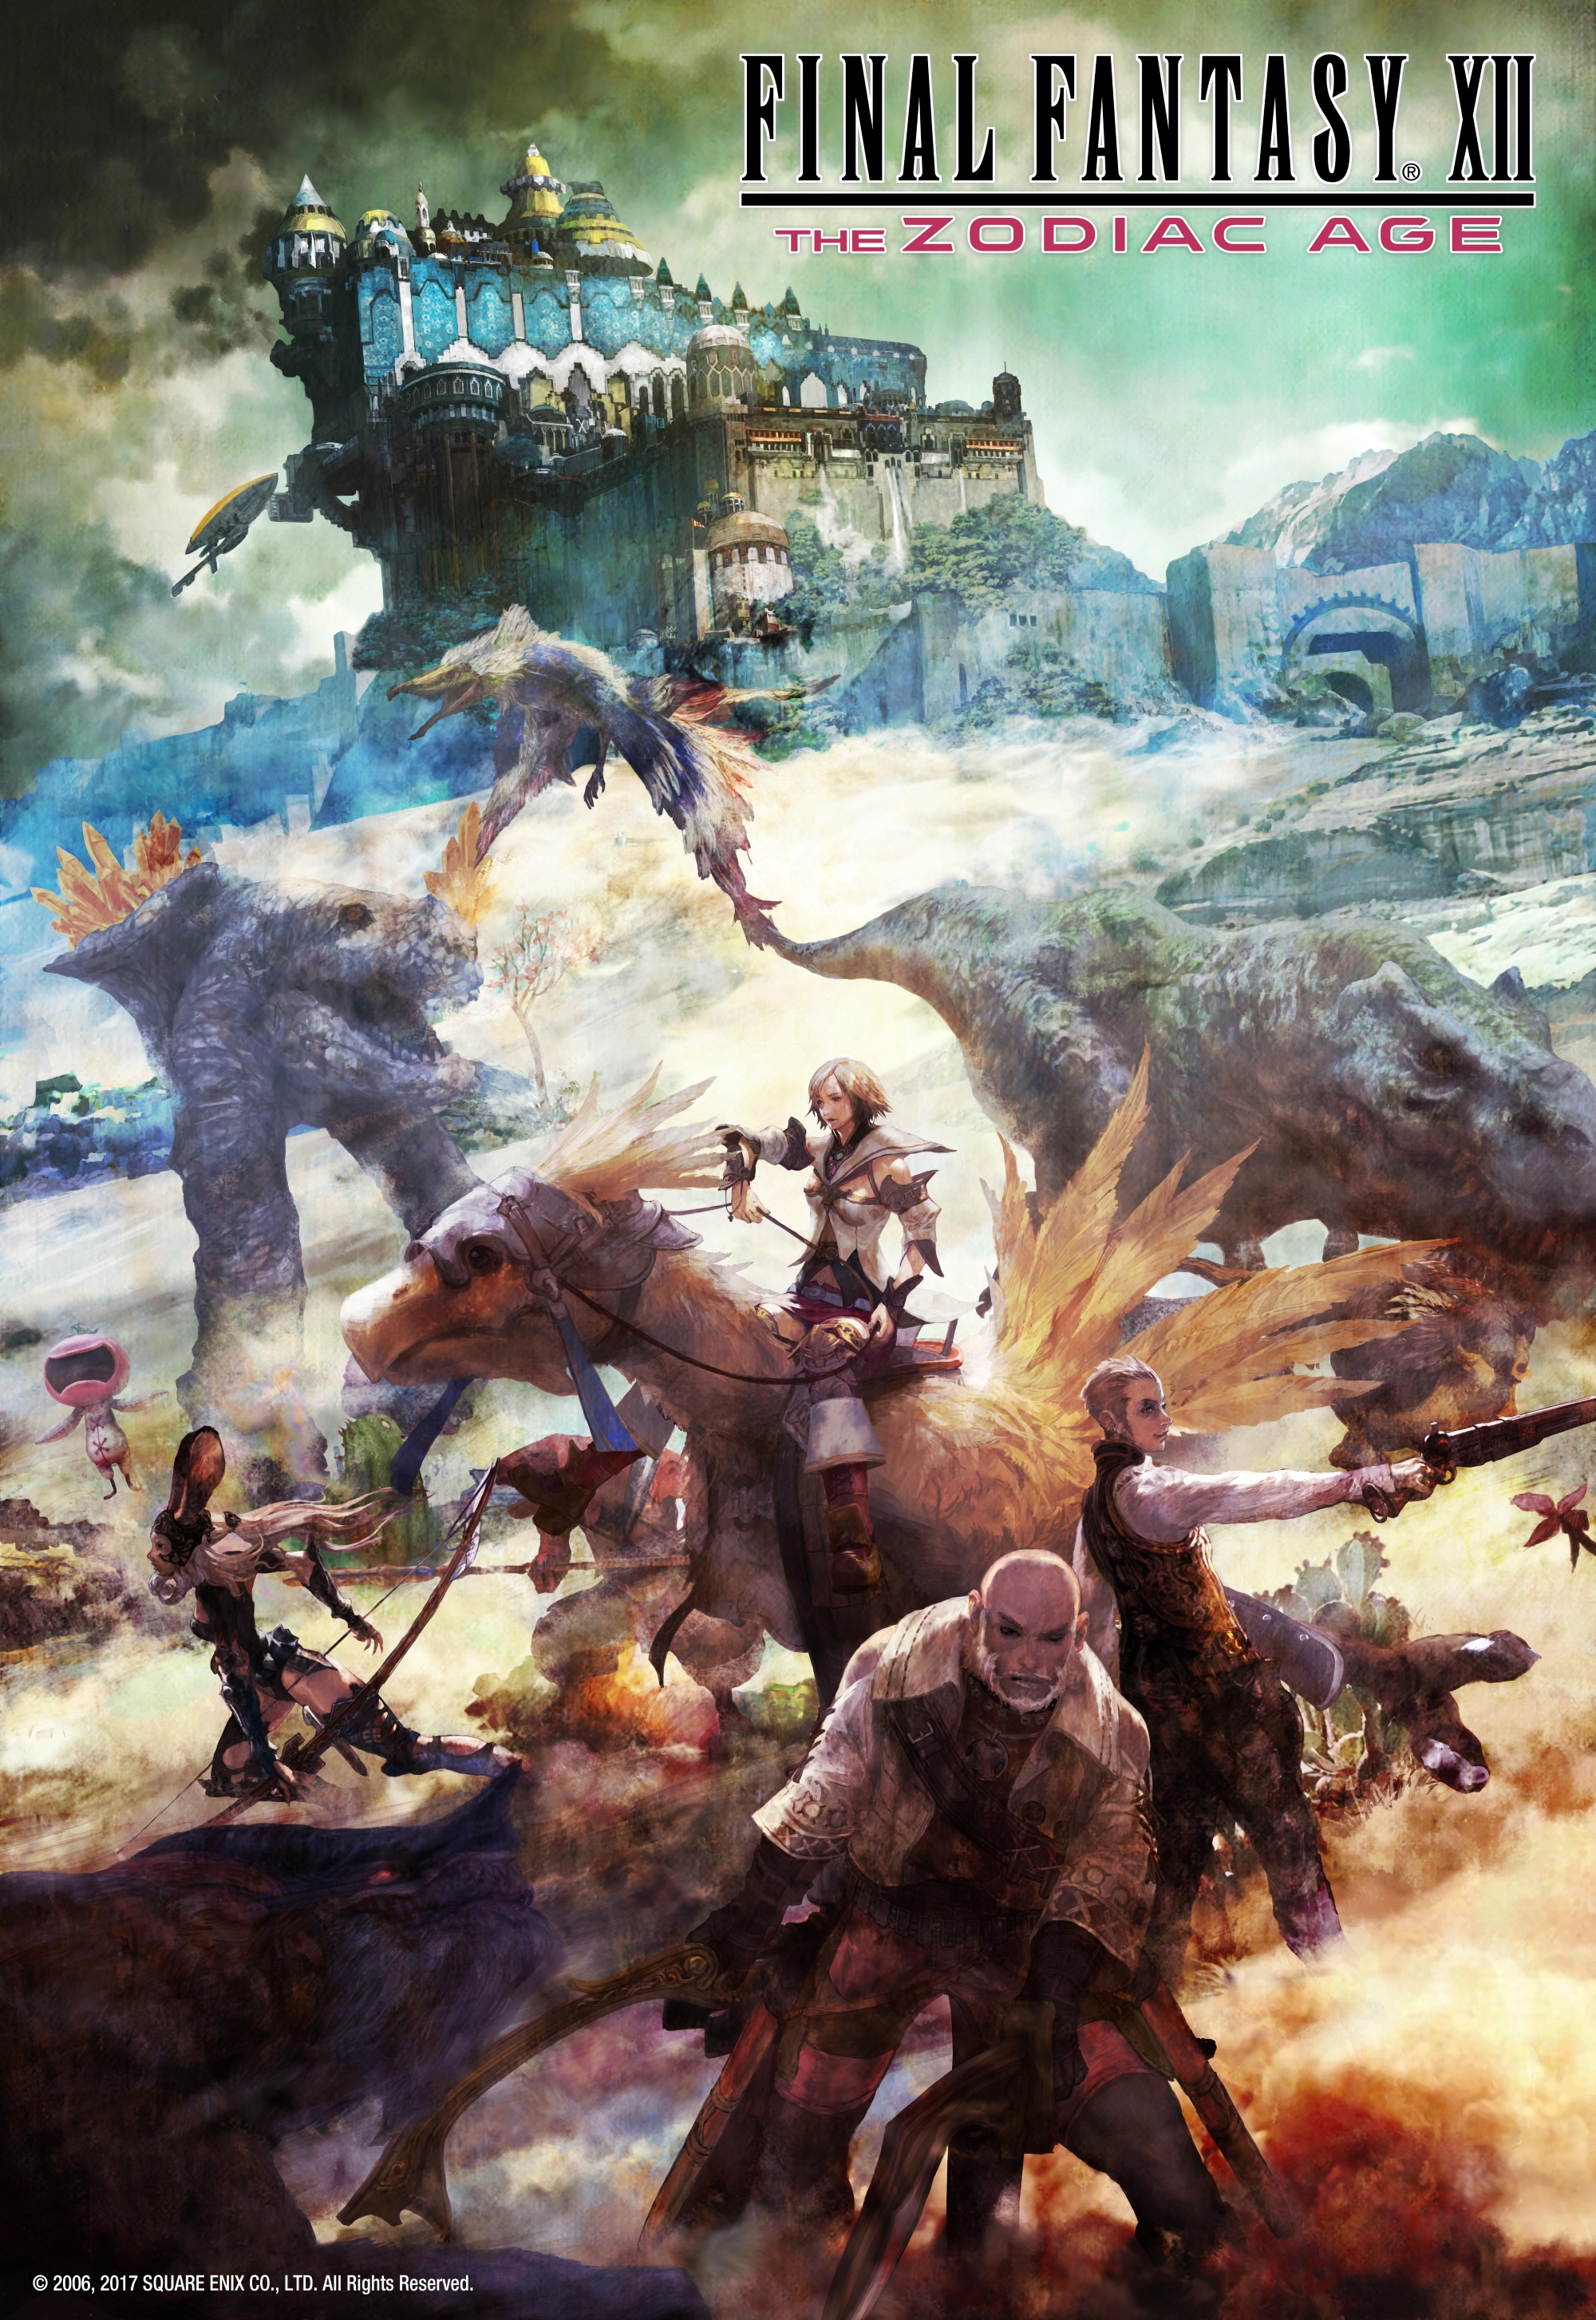 Final Fantasy XII The Zodiac Age Differences Changes And Additions Whats New In This Ivalice